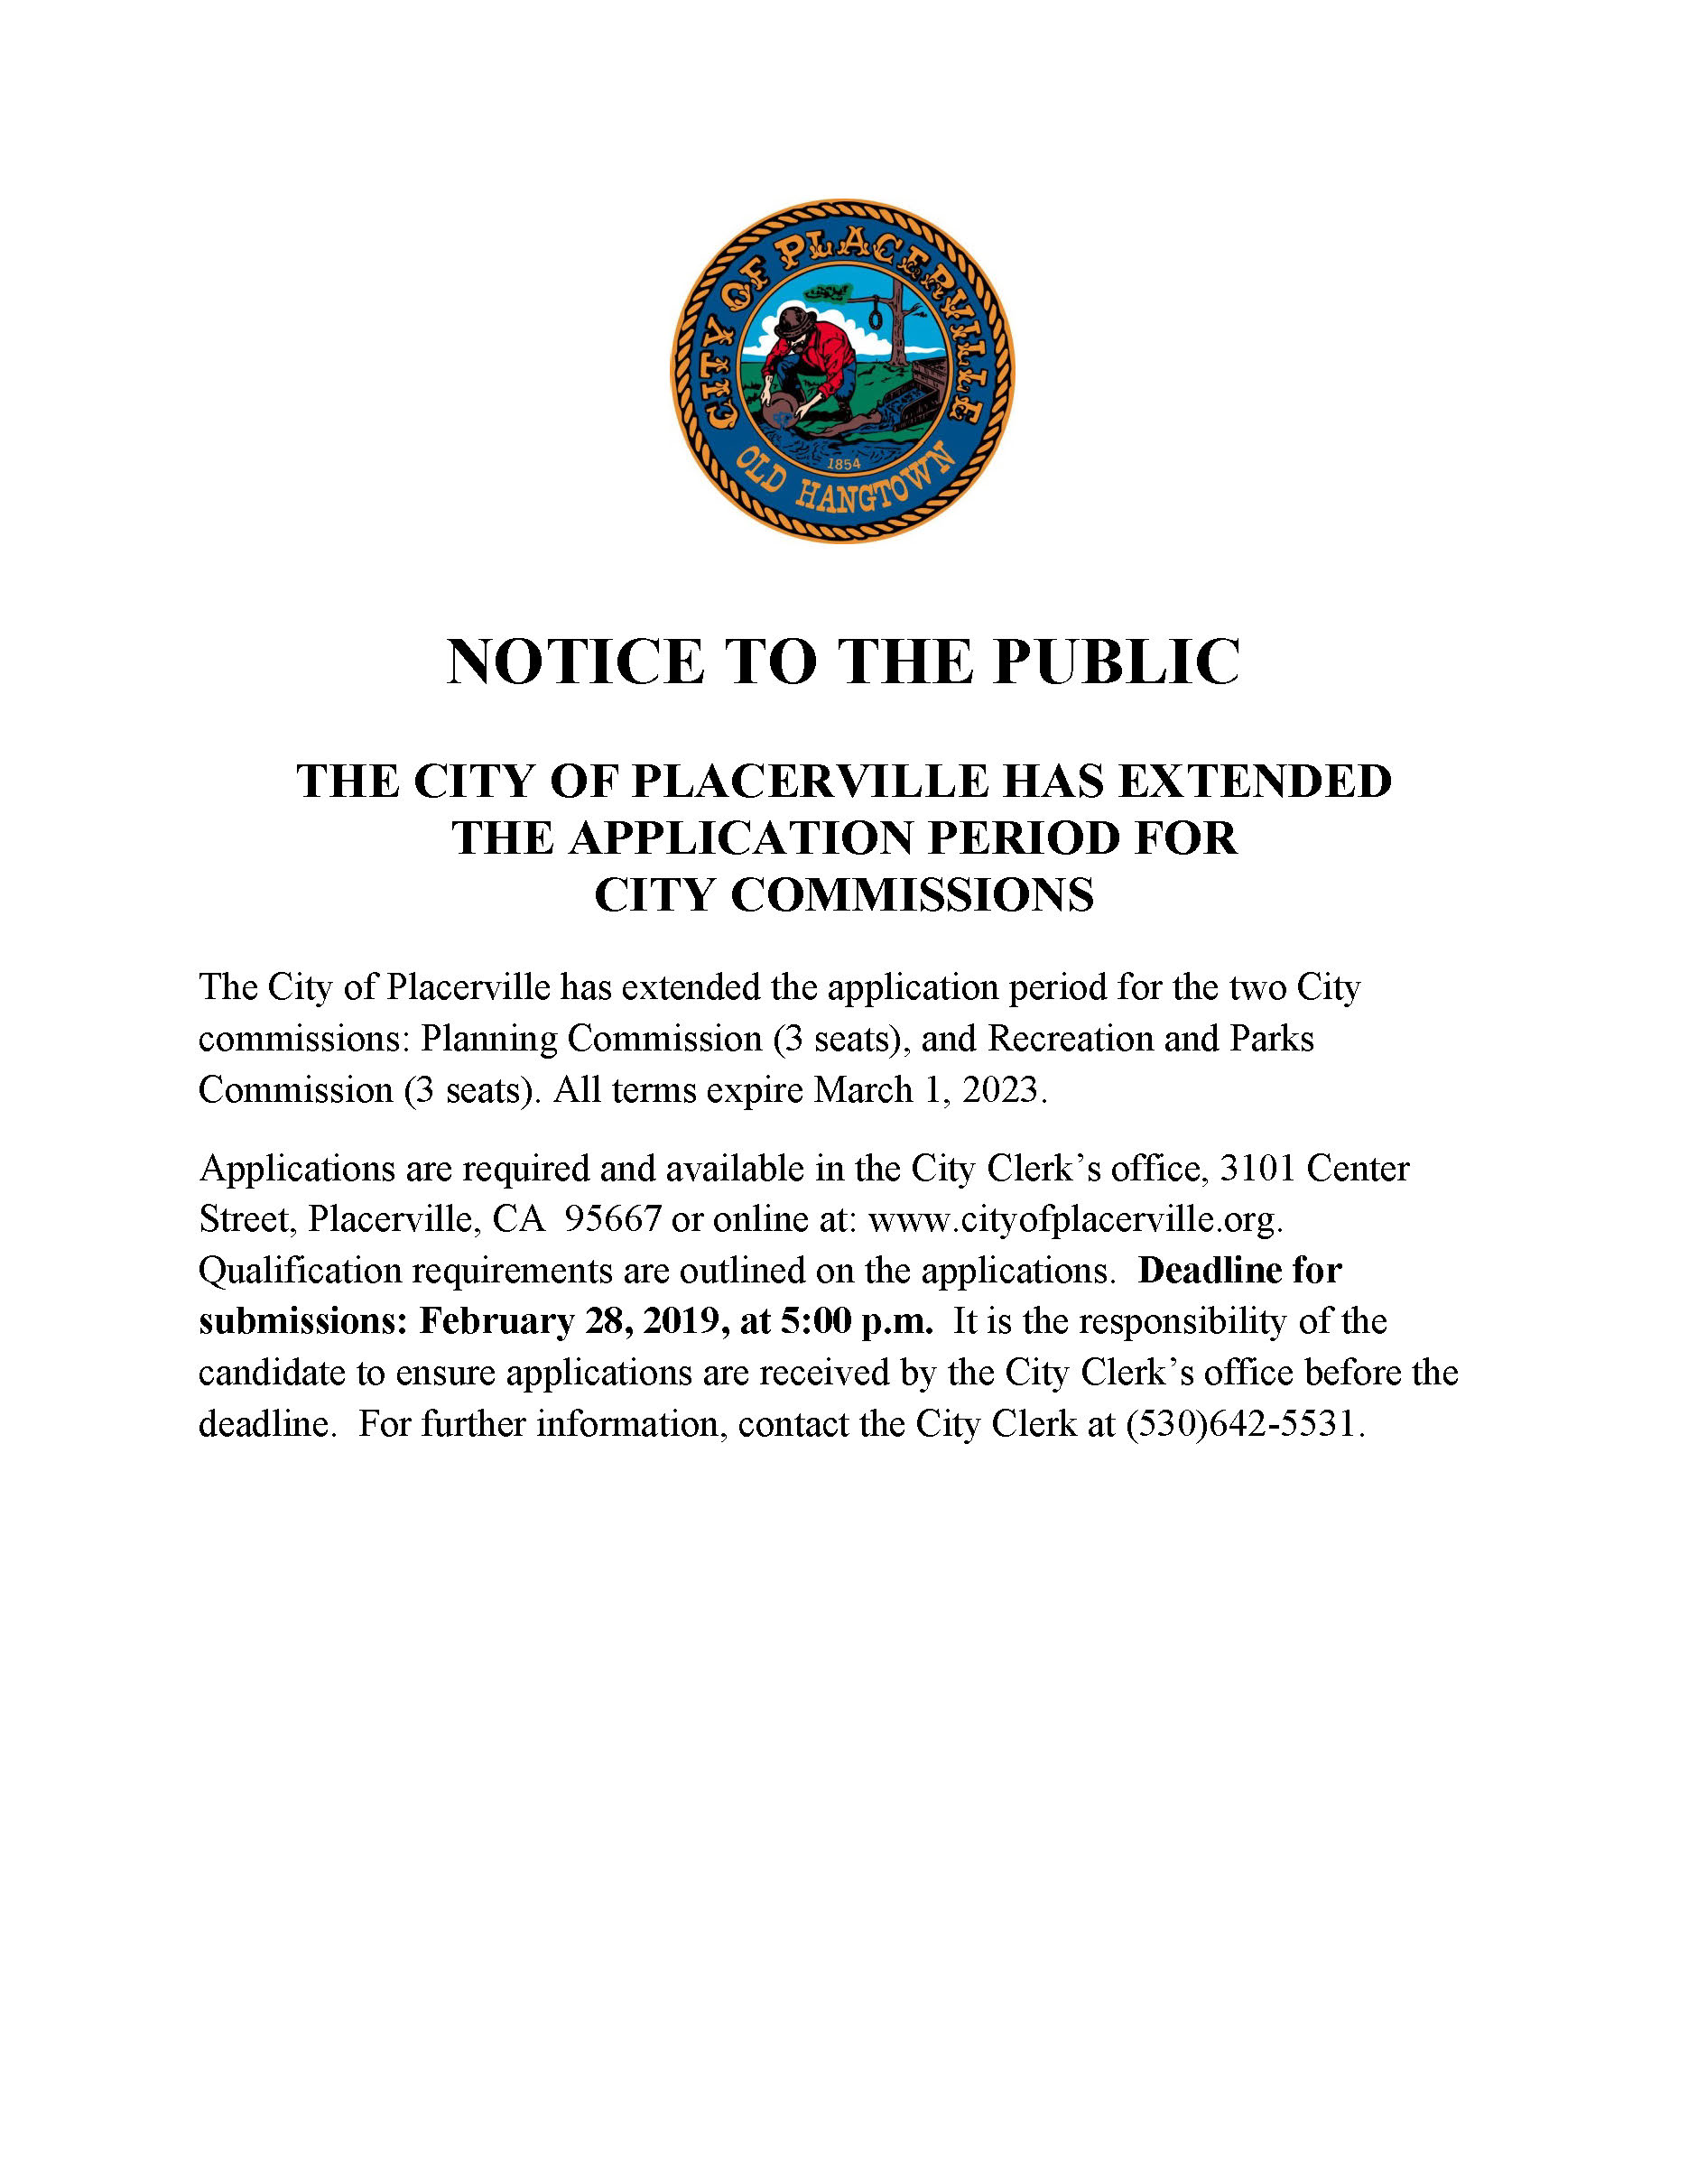 NOTICE TO THE PUBLIC 2019 Commission Extension.jpg